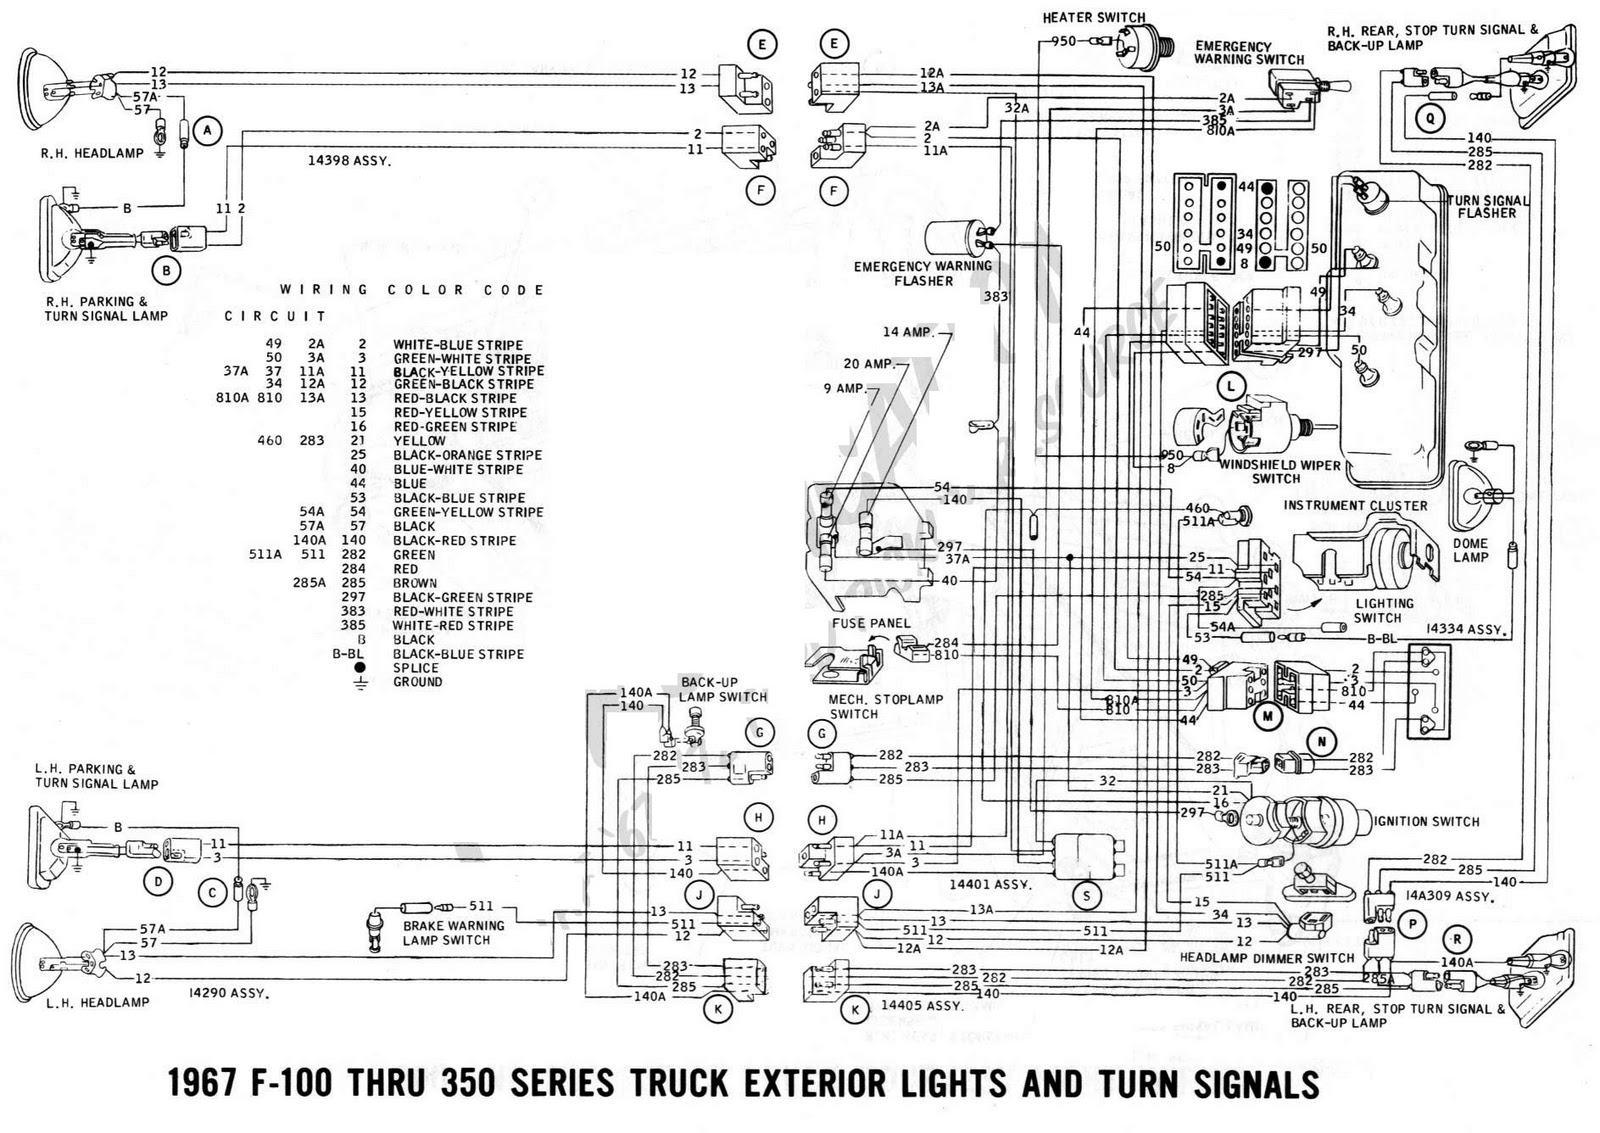 1967+Ford+F 100 350+Complete+Exterior+Lights+And+Turn+Signals+Wiring+Diagram 1967 ford f 100 350 complete exterior lights and turn signals 1970 ford f100 turn signal wiring diagram at mifinder.co